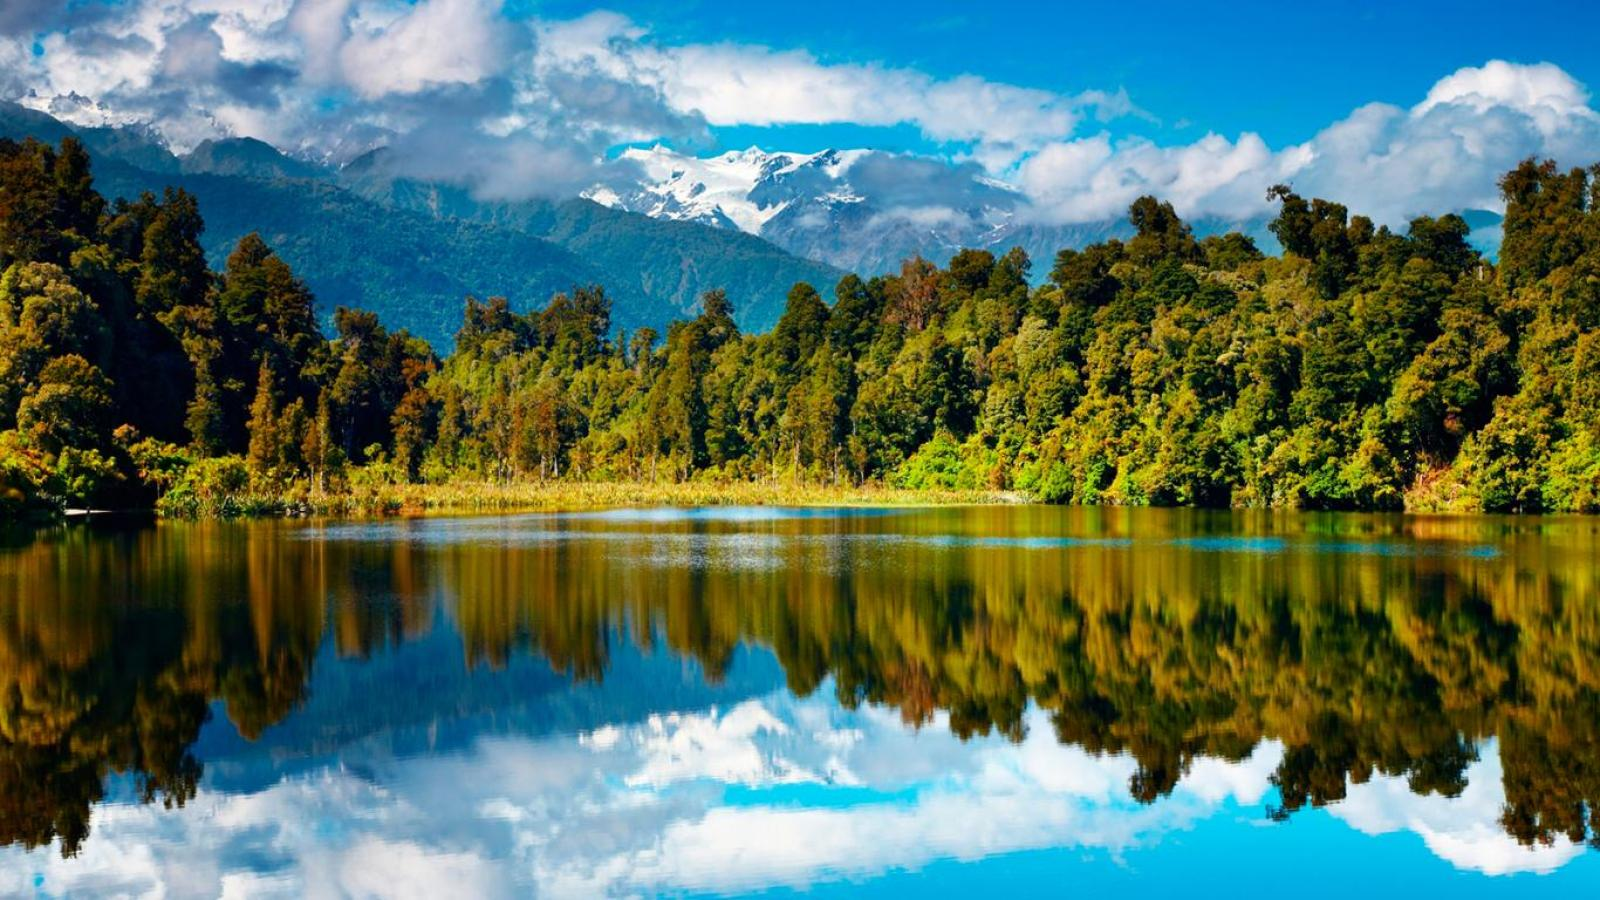 Wallpaper Tags: trees reflection mountains river serene clouds